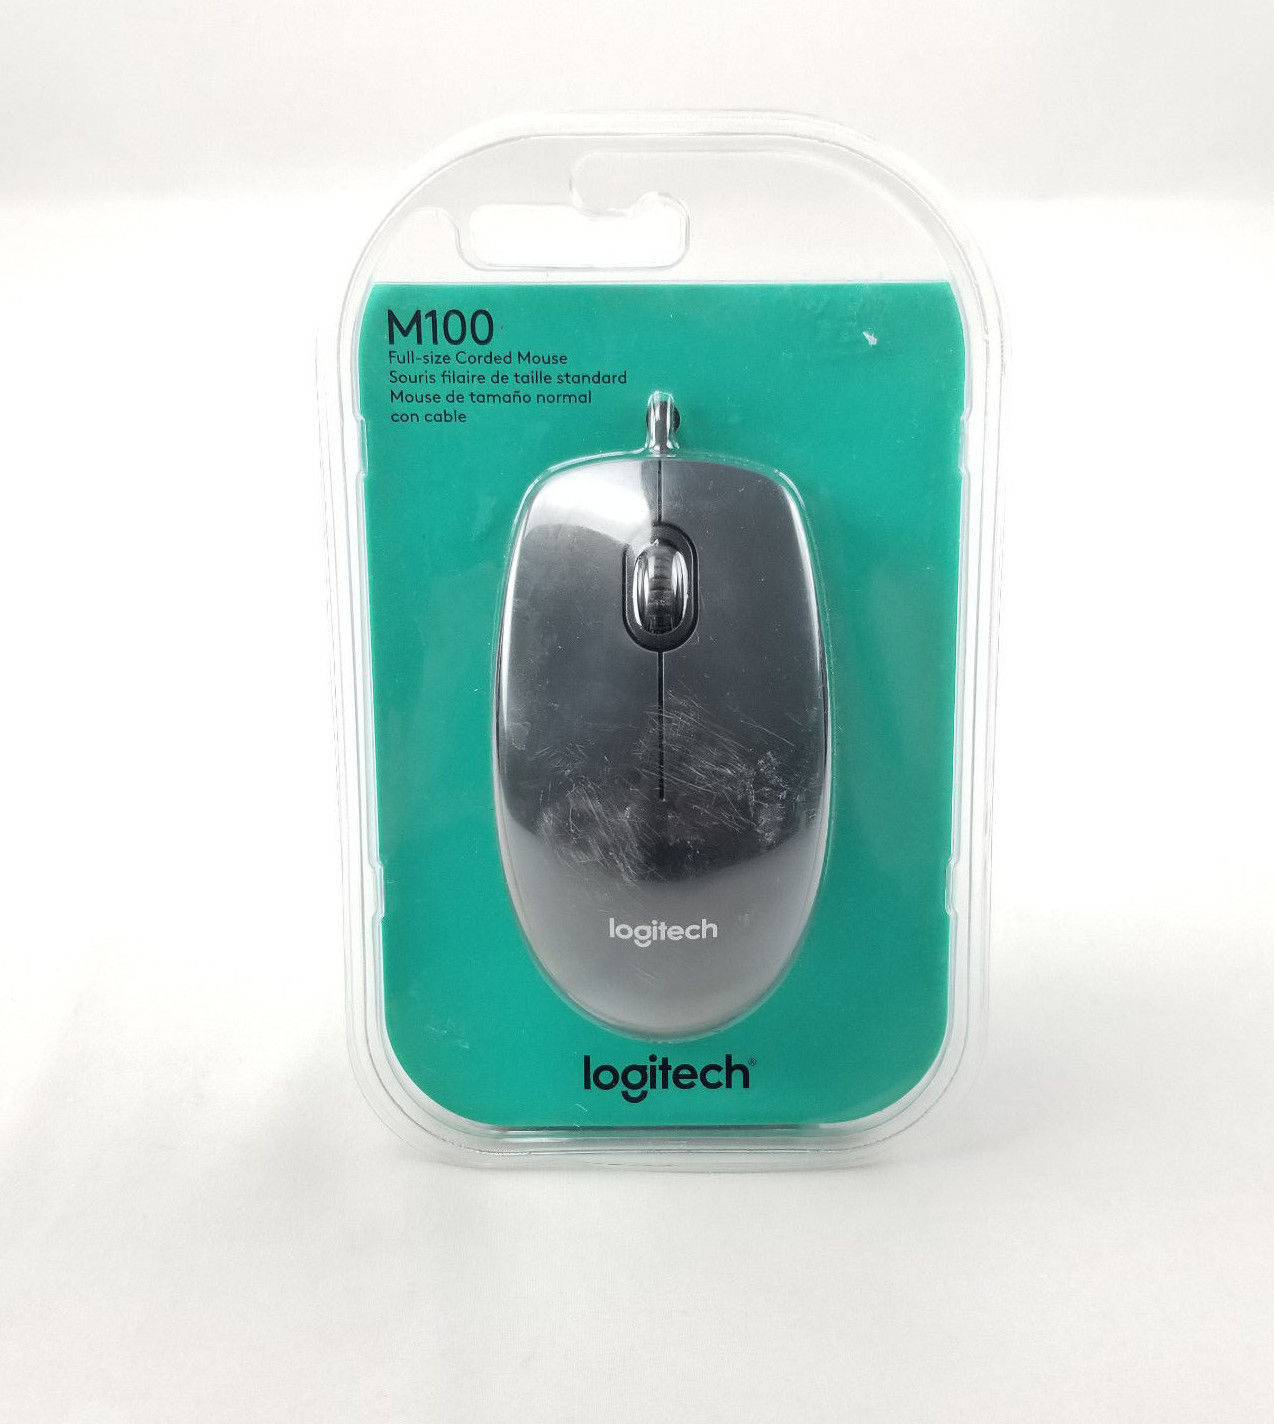 4b6f7479d3c S l1600. S l1600. Previous. Logitech M100 Wired Optical Mouse Mice 1000DPI  USB - Black ...